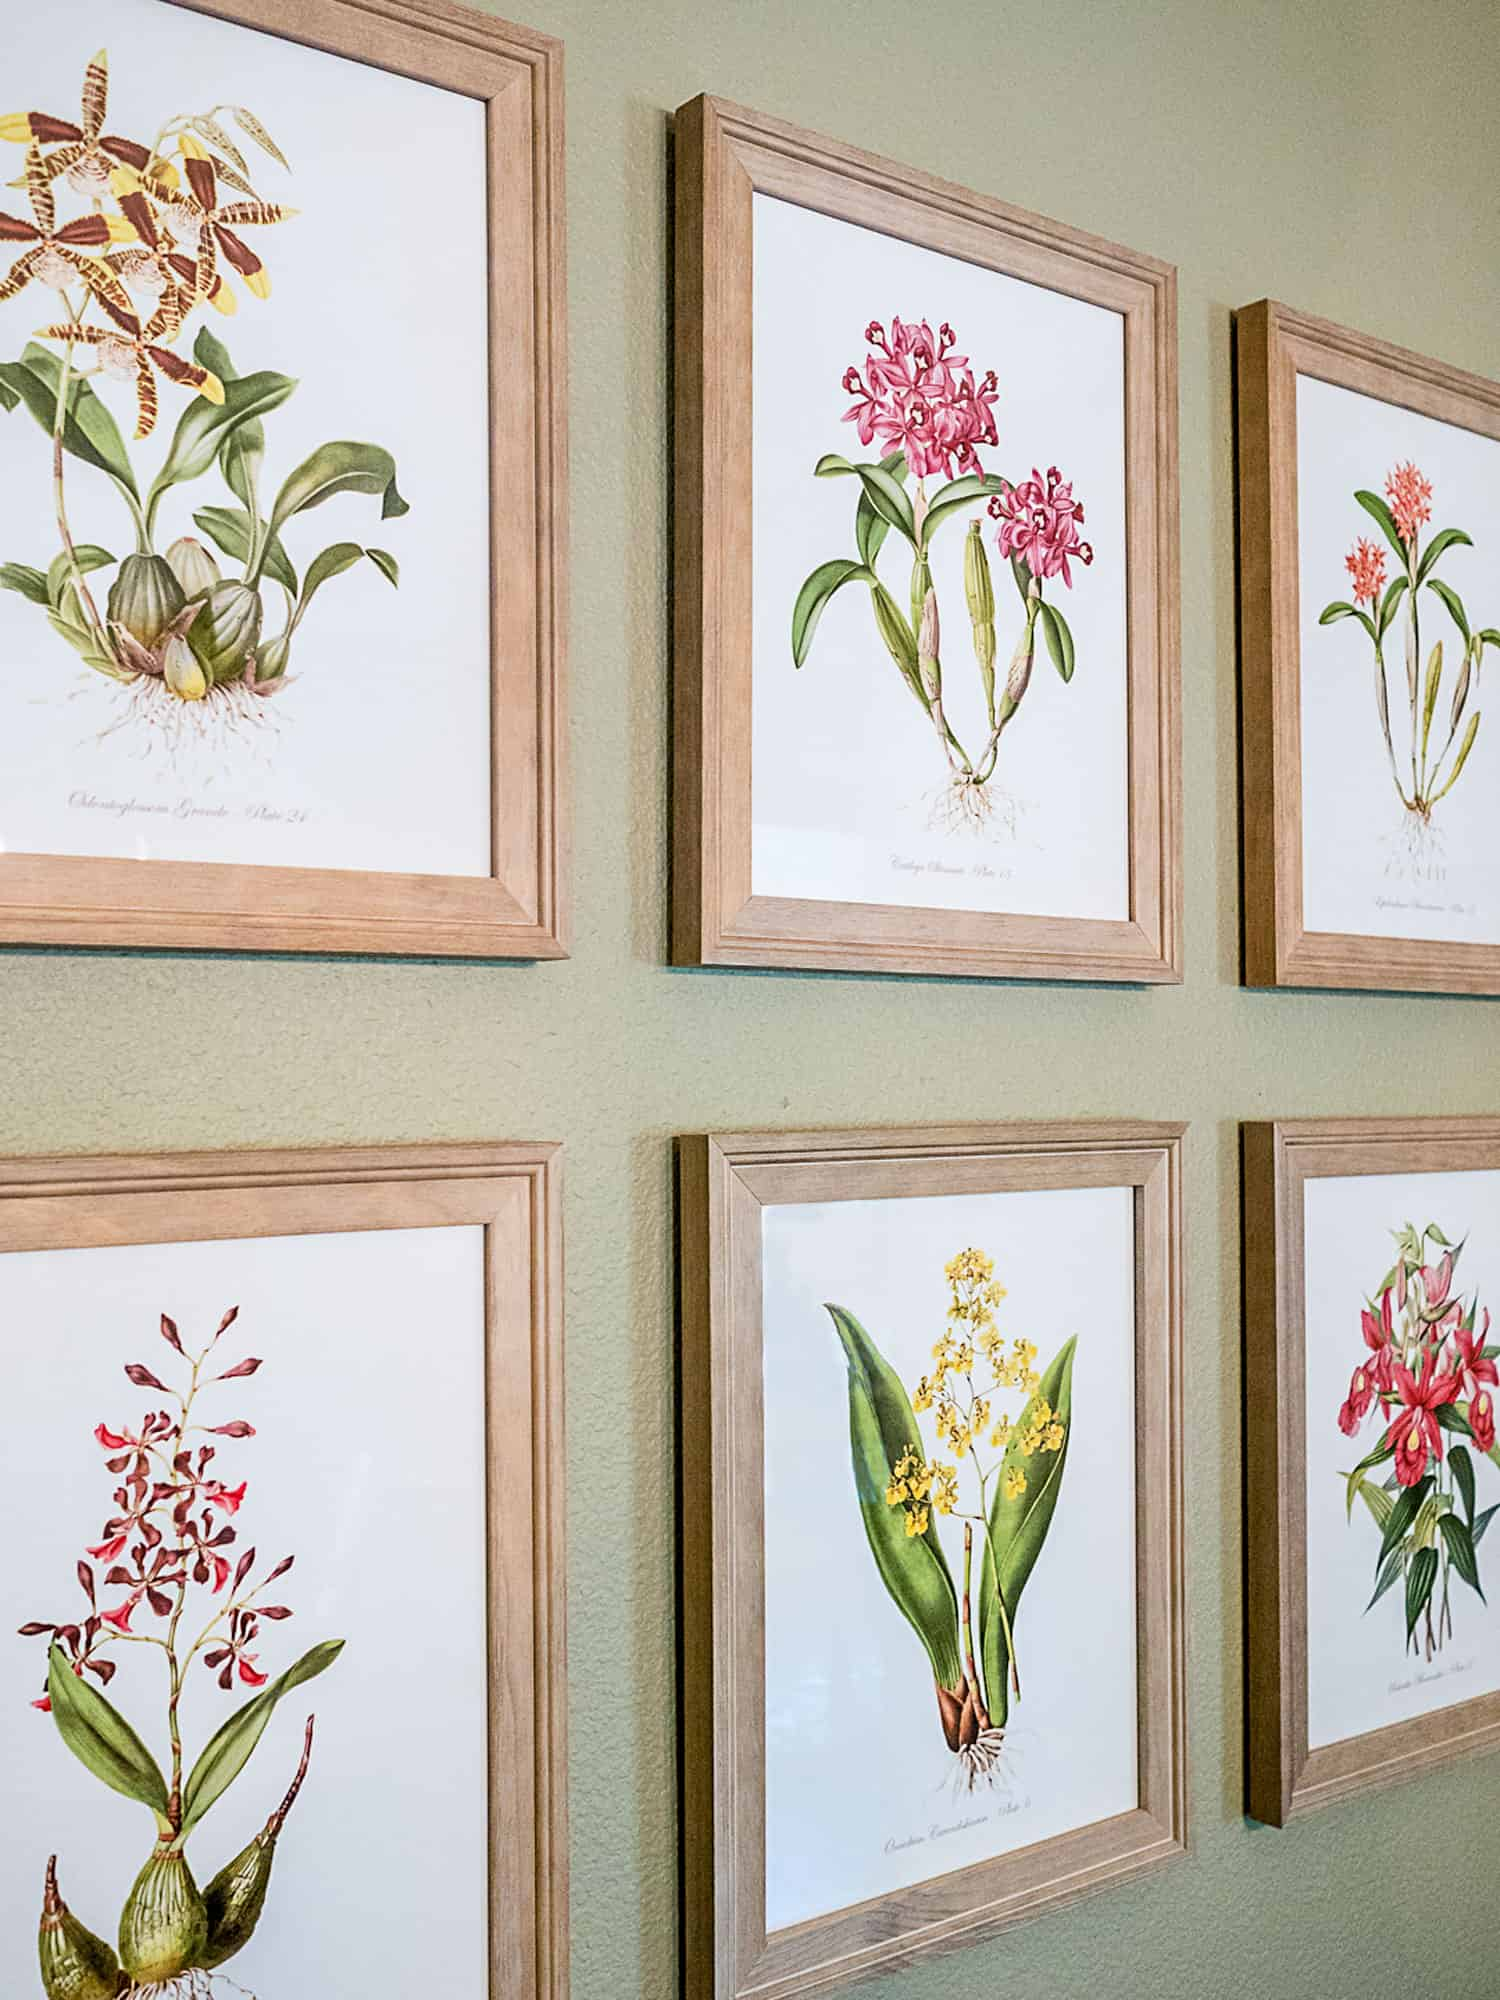 Set of six botanical prints with spring flowers as DIY wall decor